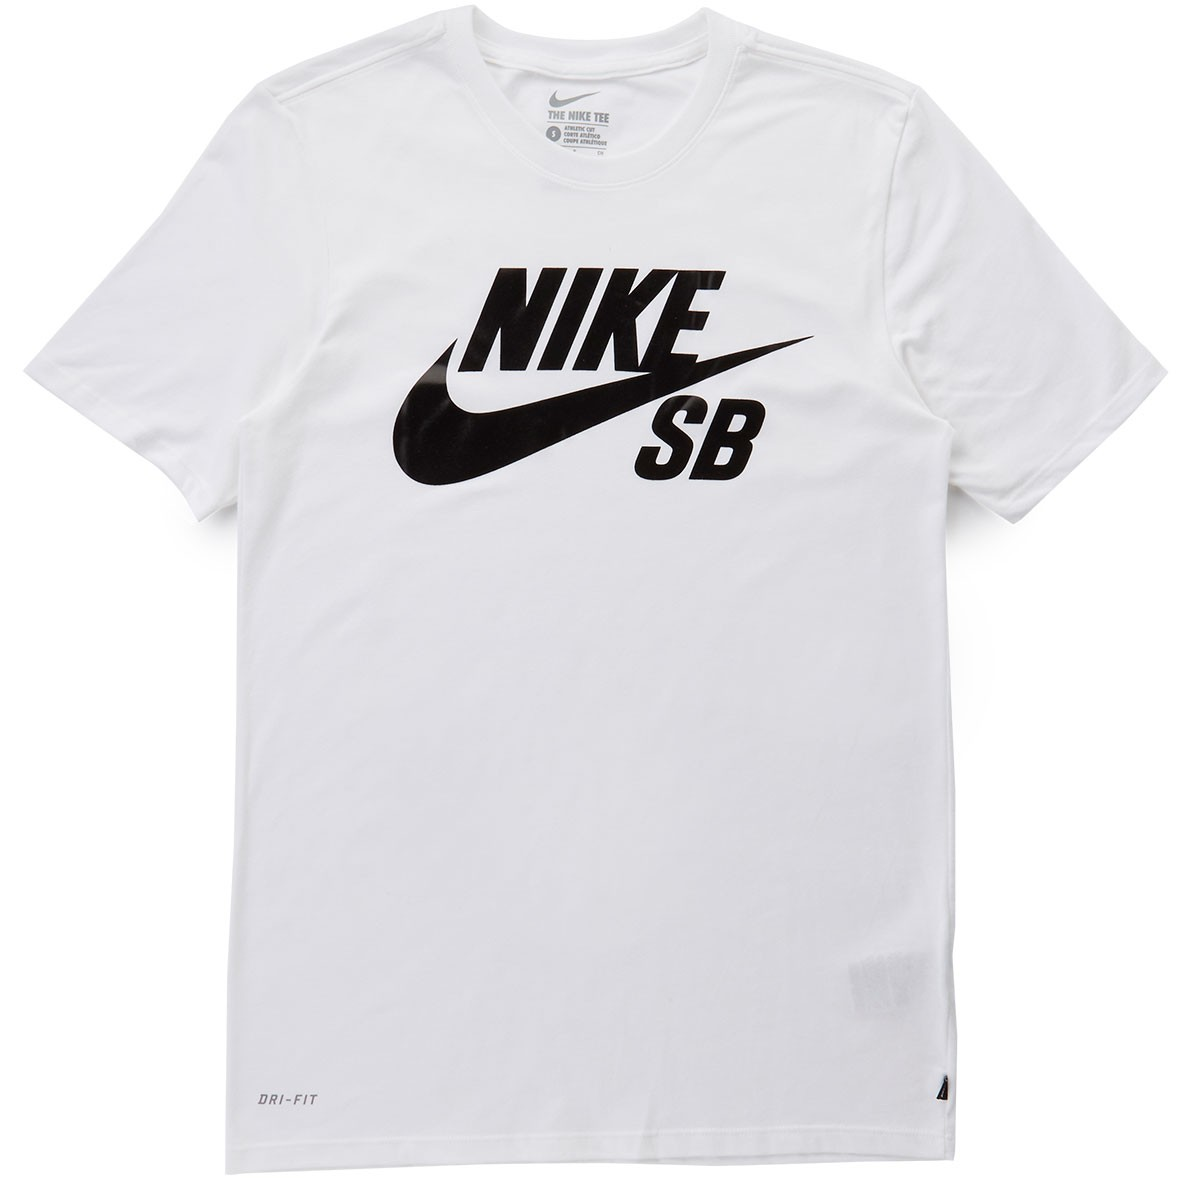 Nike white t shirt photo